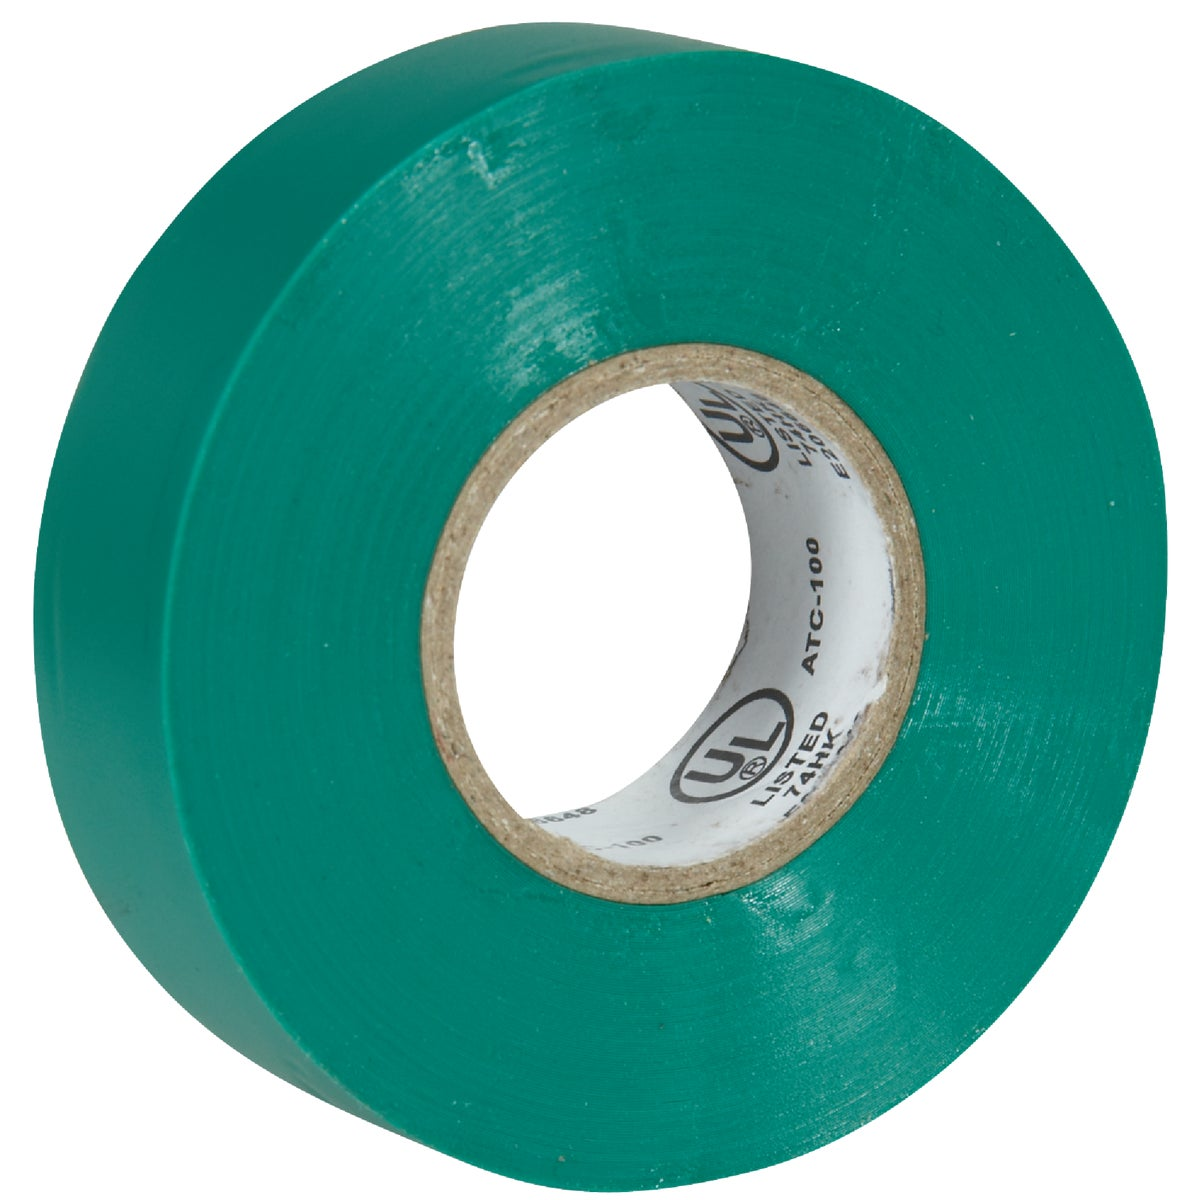 GREEN ELECTRICAL TAPE - 528277 by Do it Best